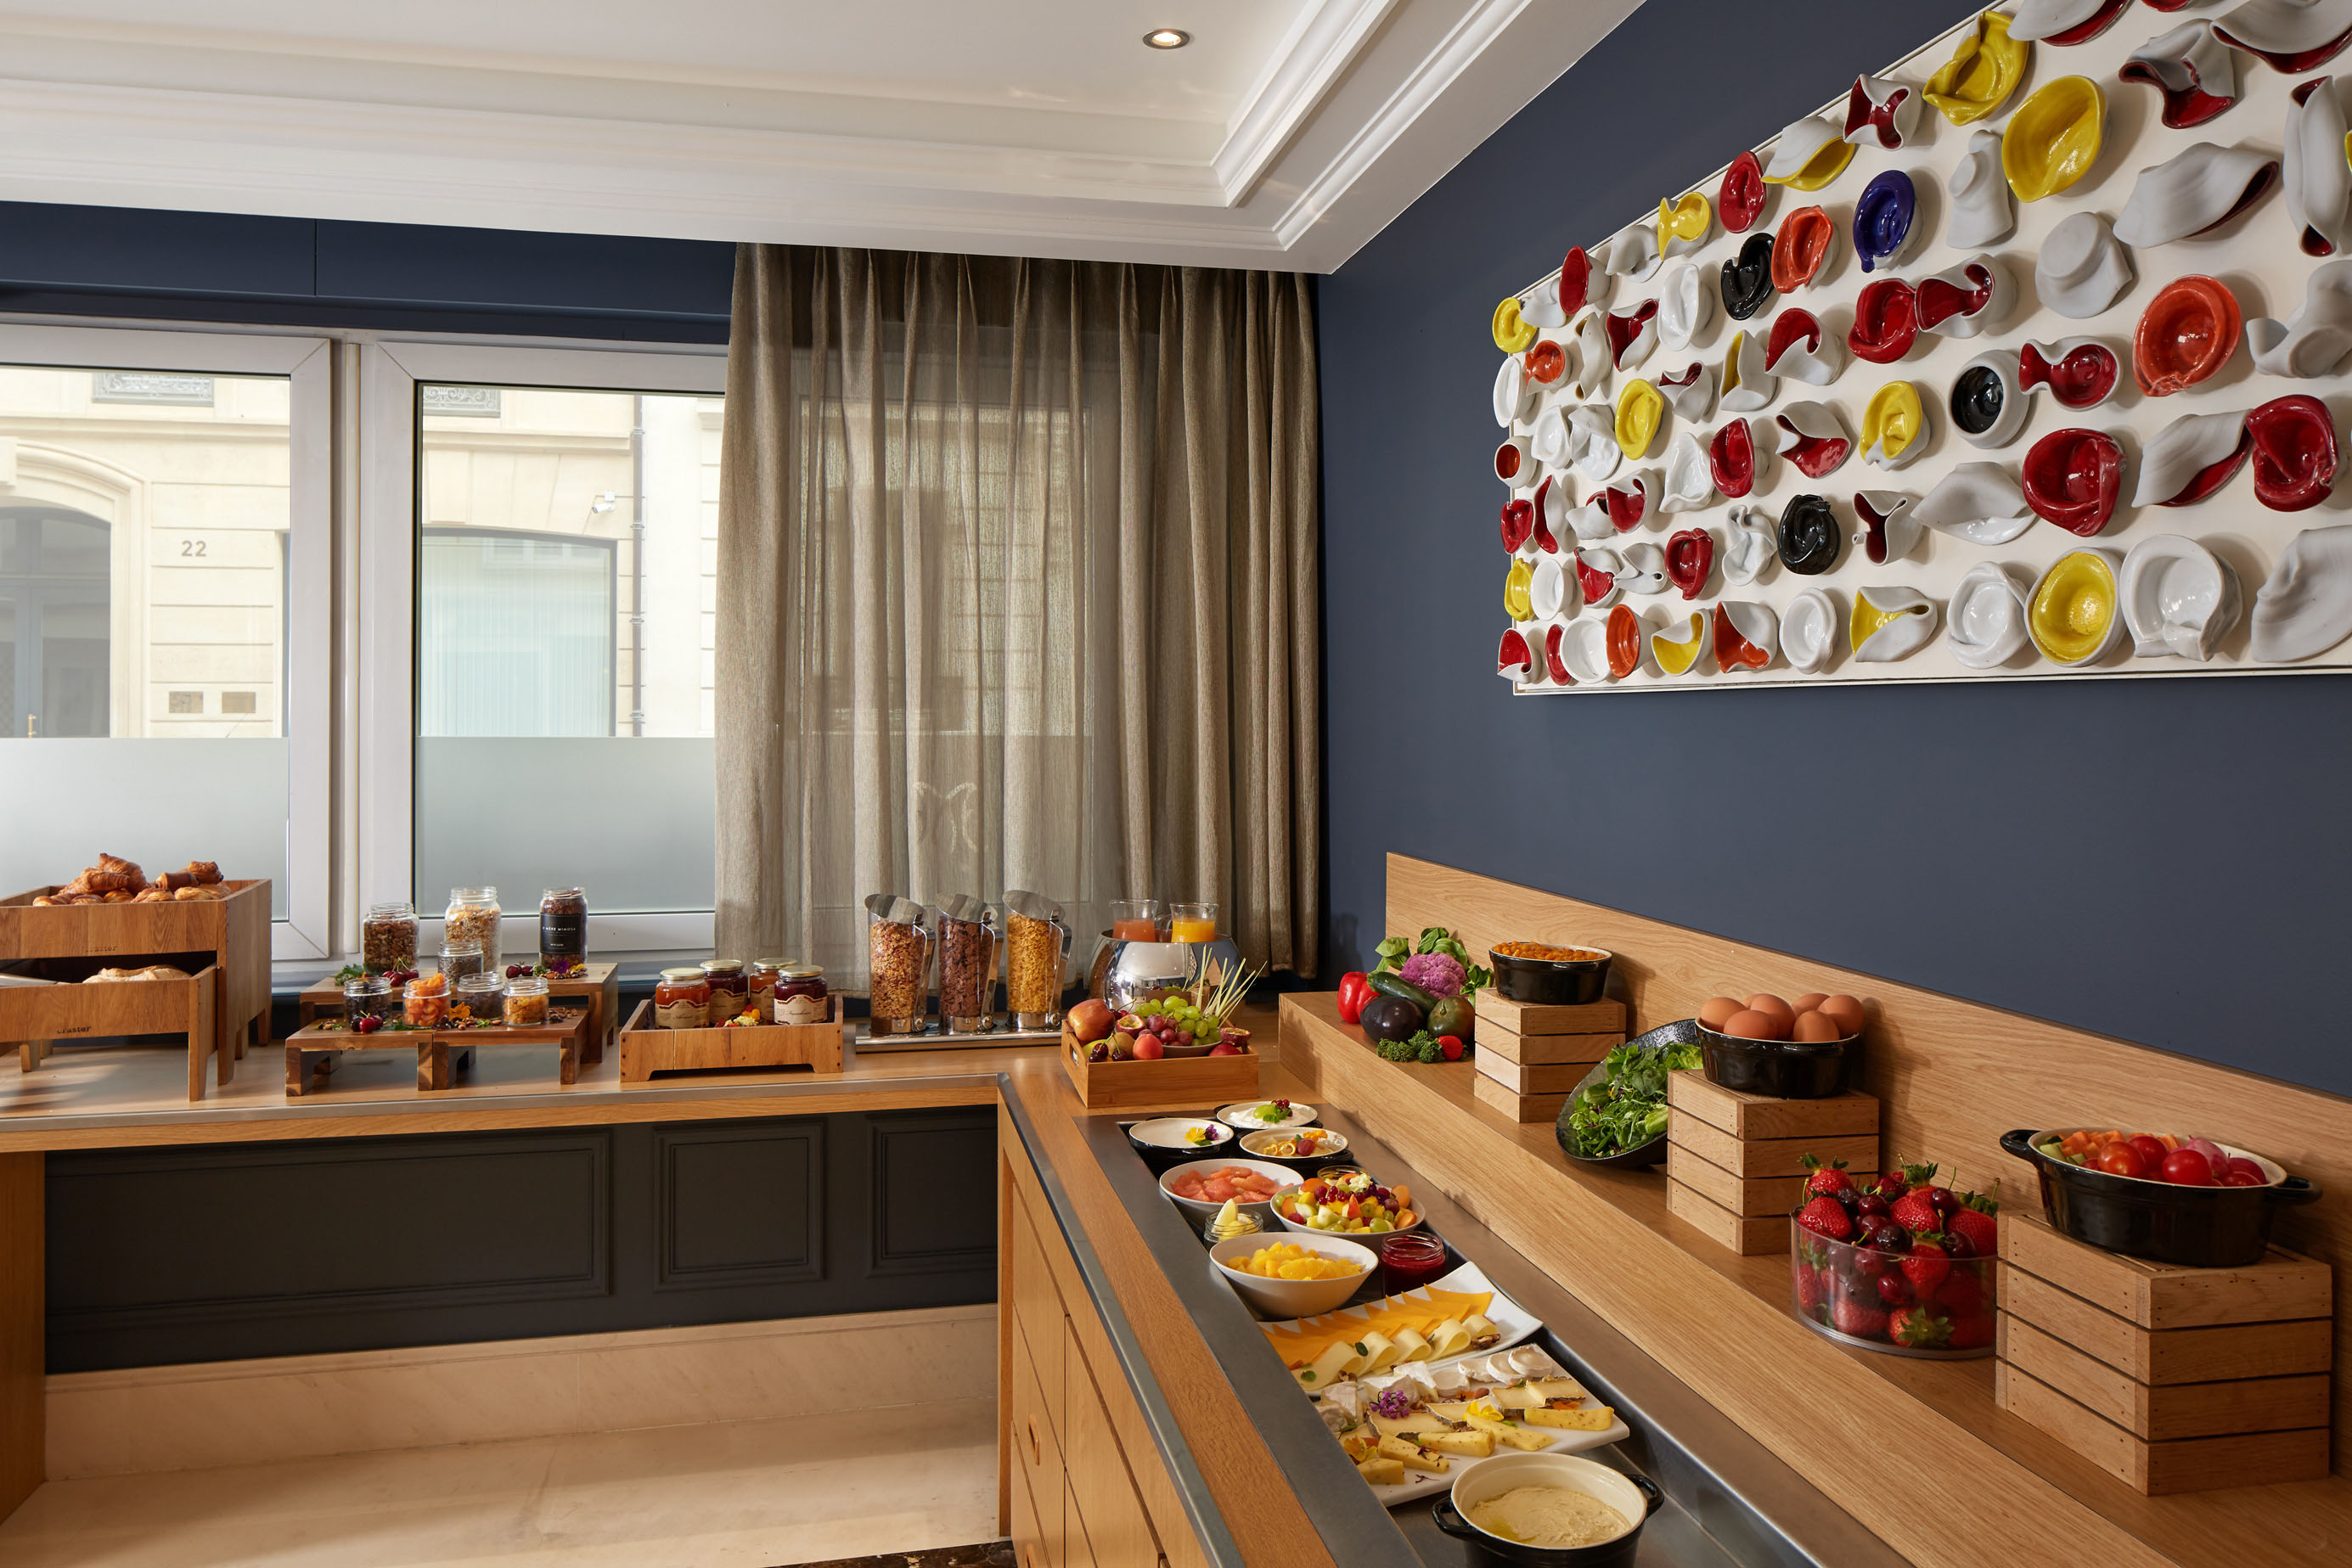 260/Breakfast/Breakfast room 2 - CMajestic Hotel-Spa.jpg